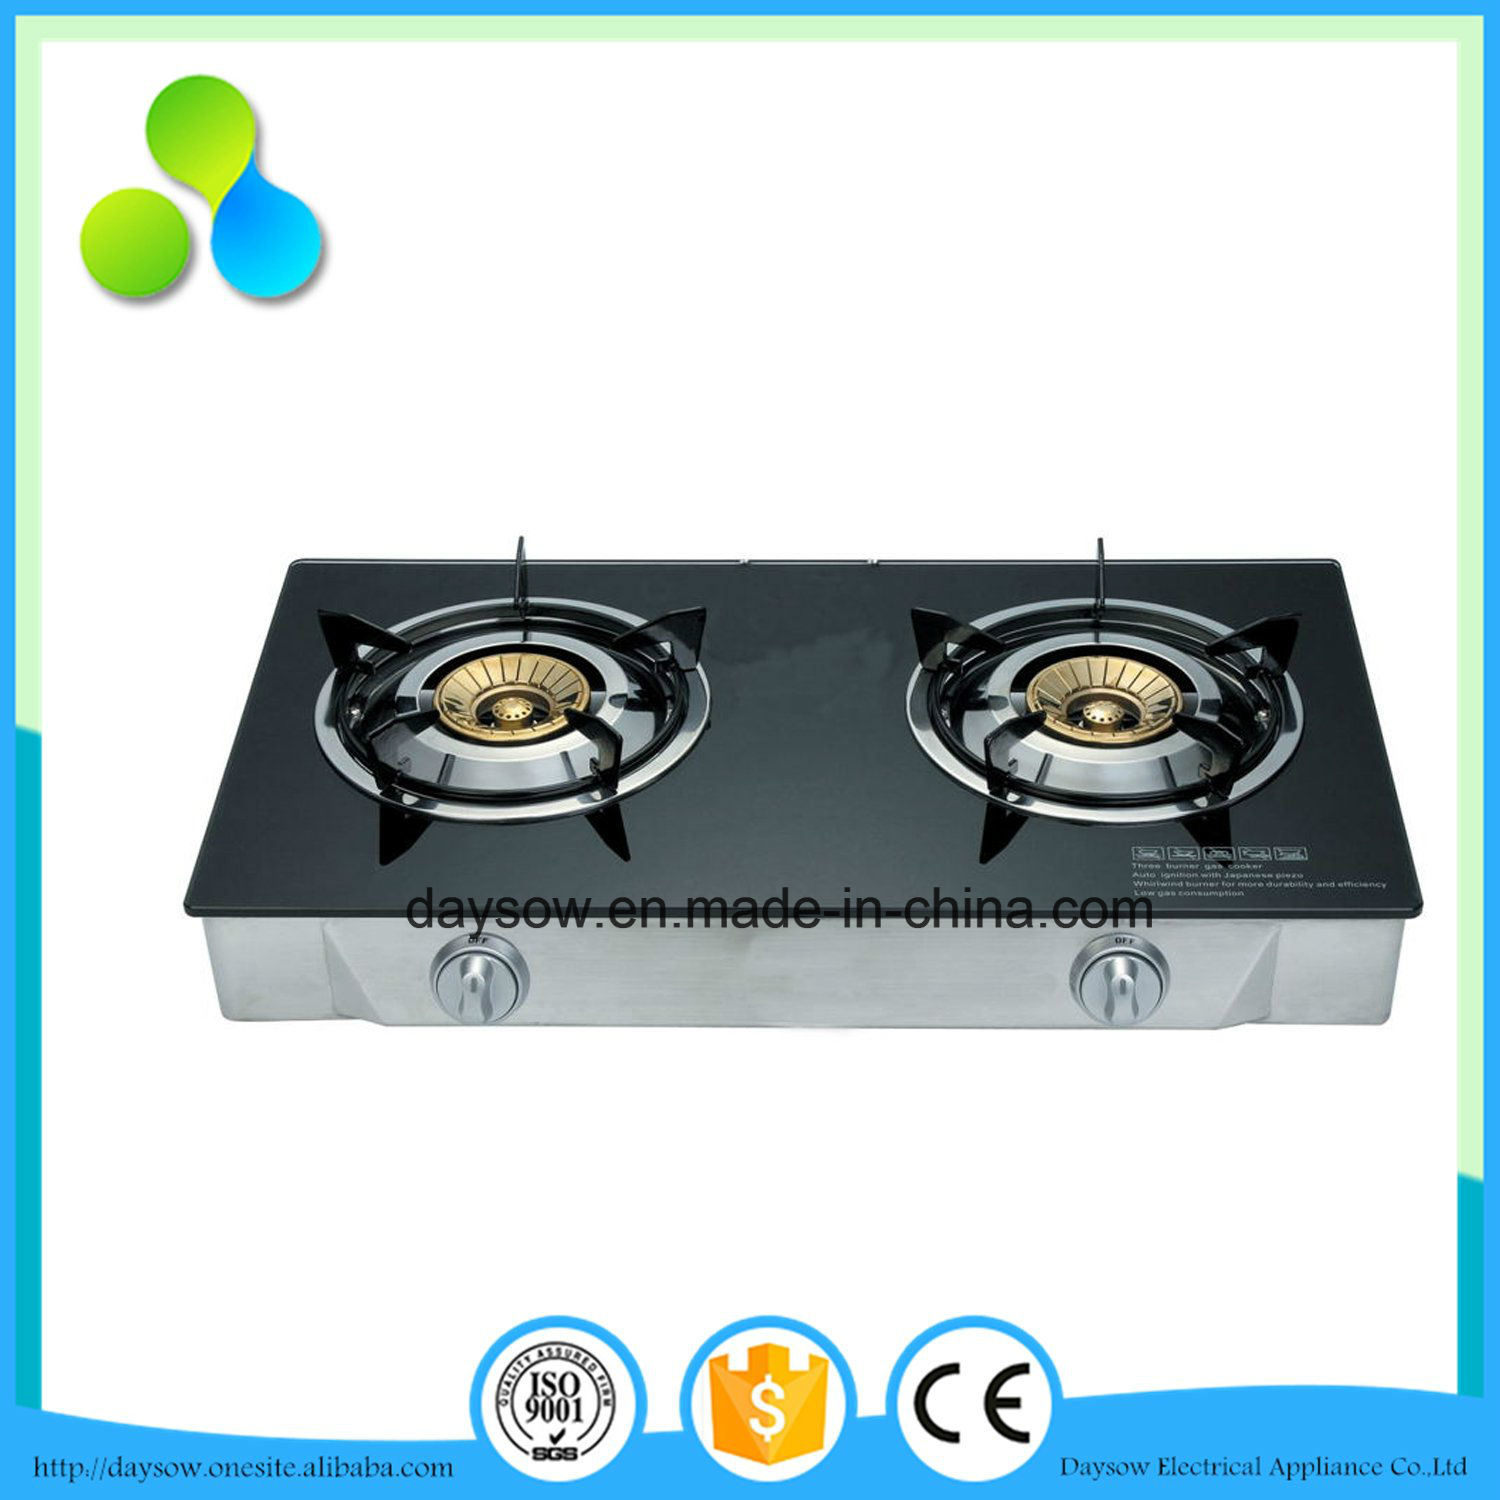 Gas Stove with Glass Top, Household Gas Stove, Gas Cooker